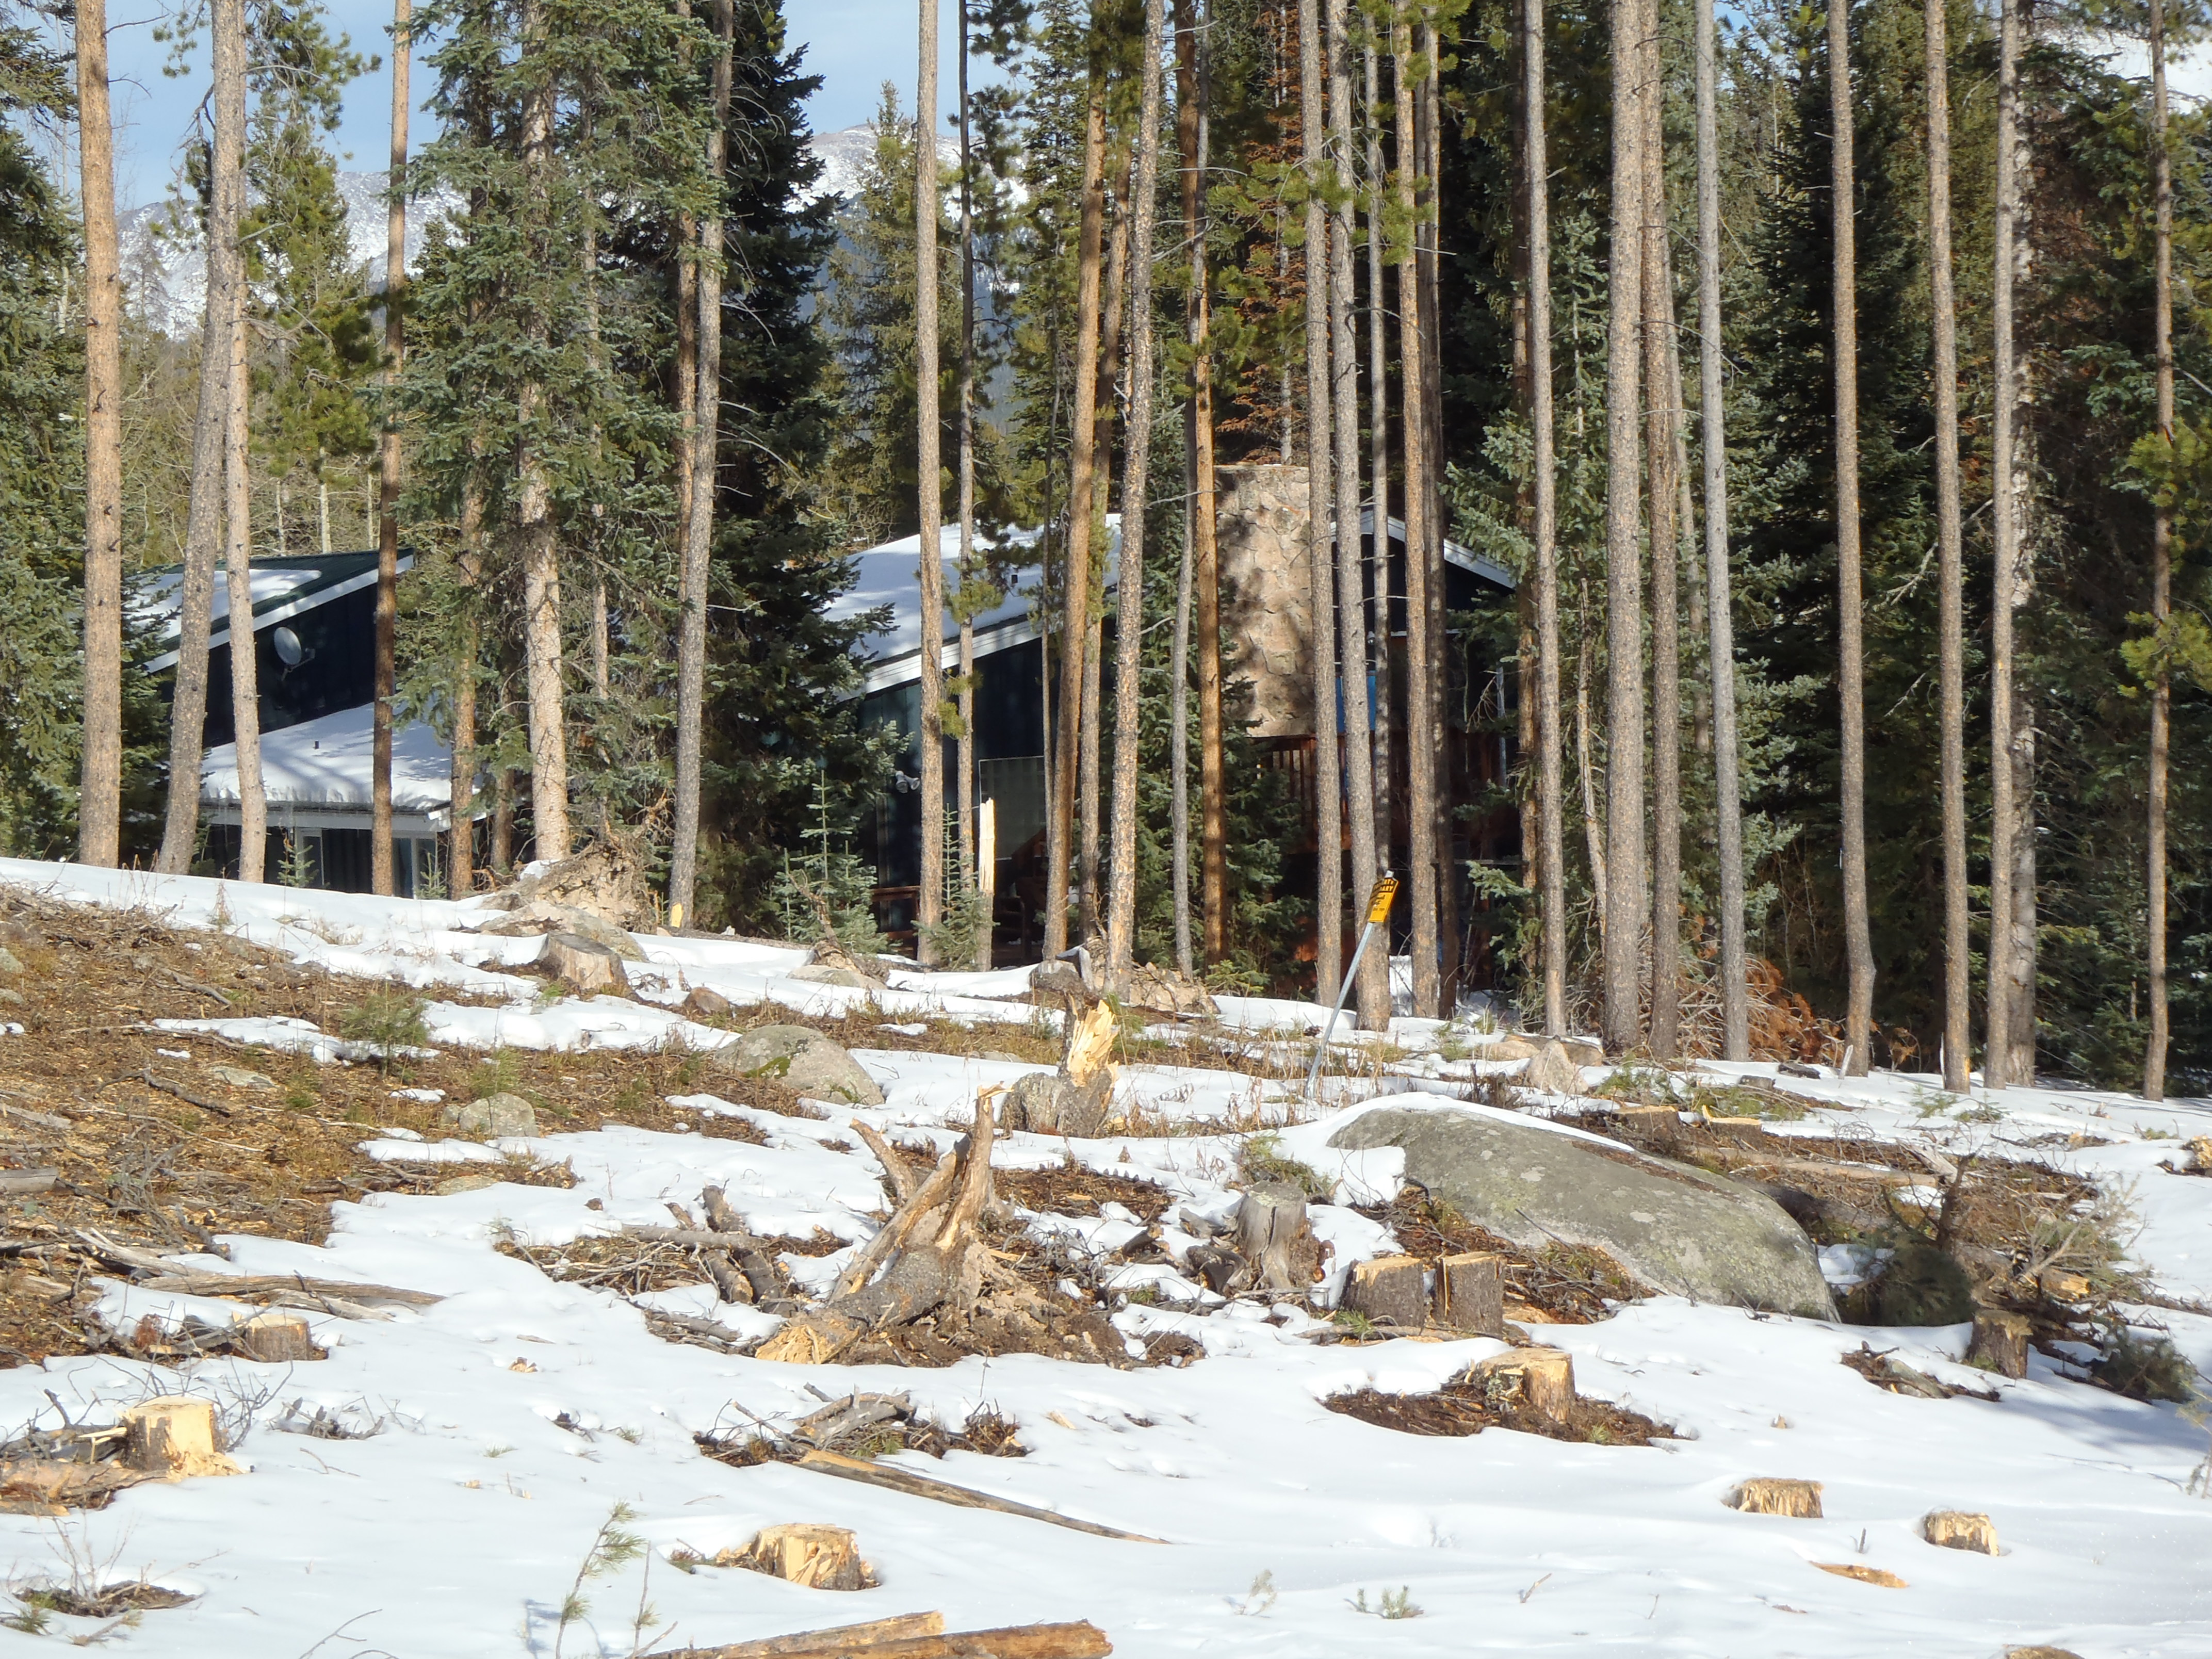 Trees have been removed along the national forest boundary and a home is visible.